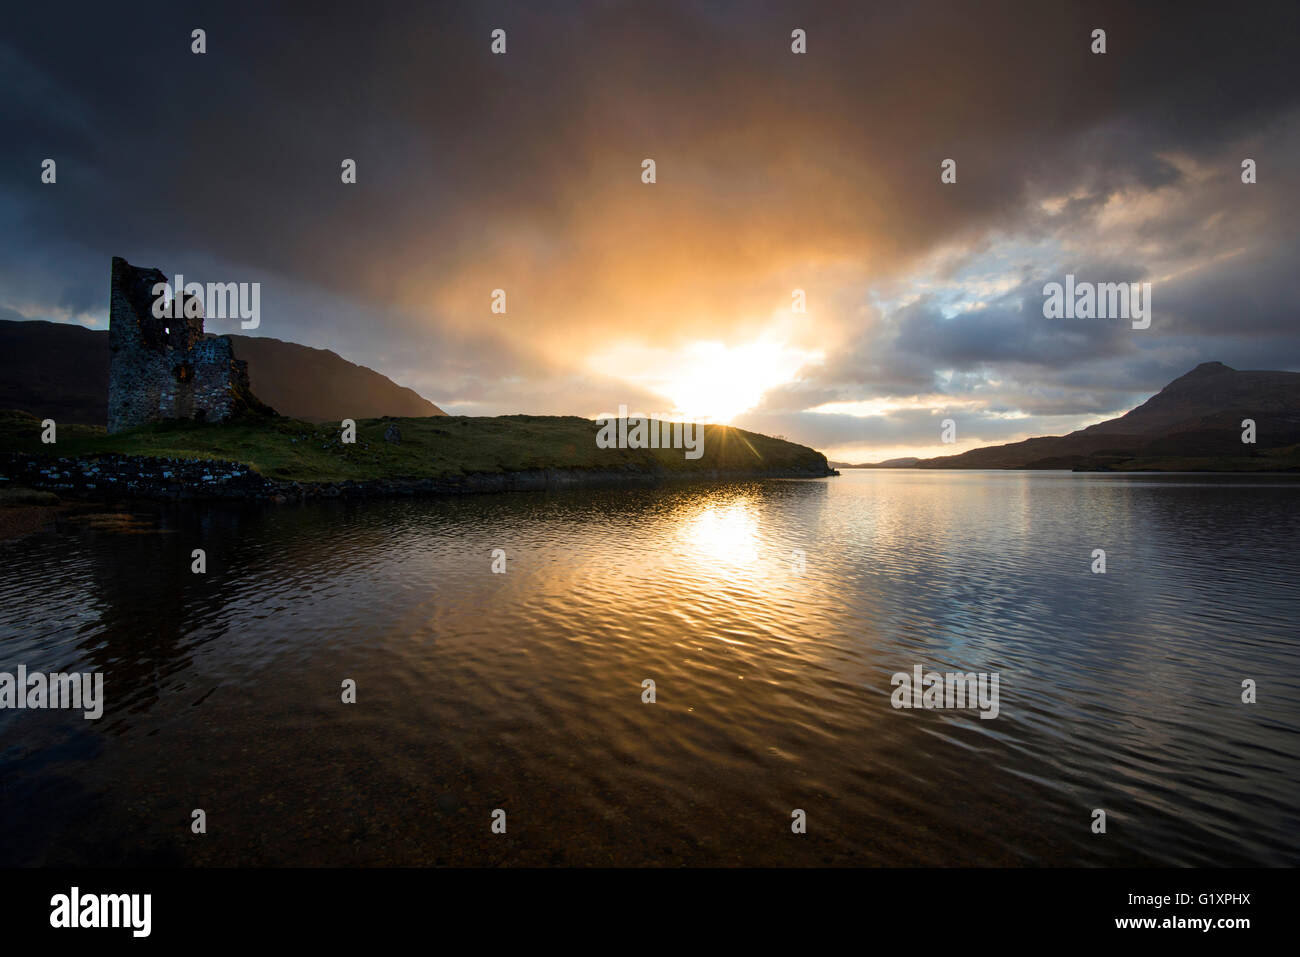 Dramatic sunset at Ardvreck Castle, on Loch Assynt in Sutherland Scotland UK - Stock Image